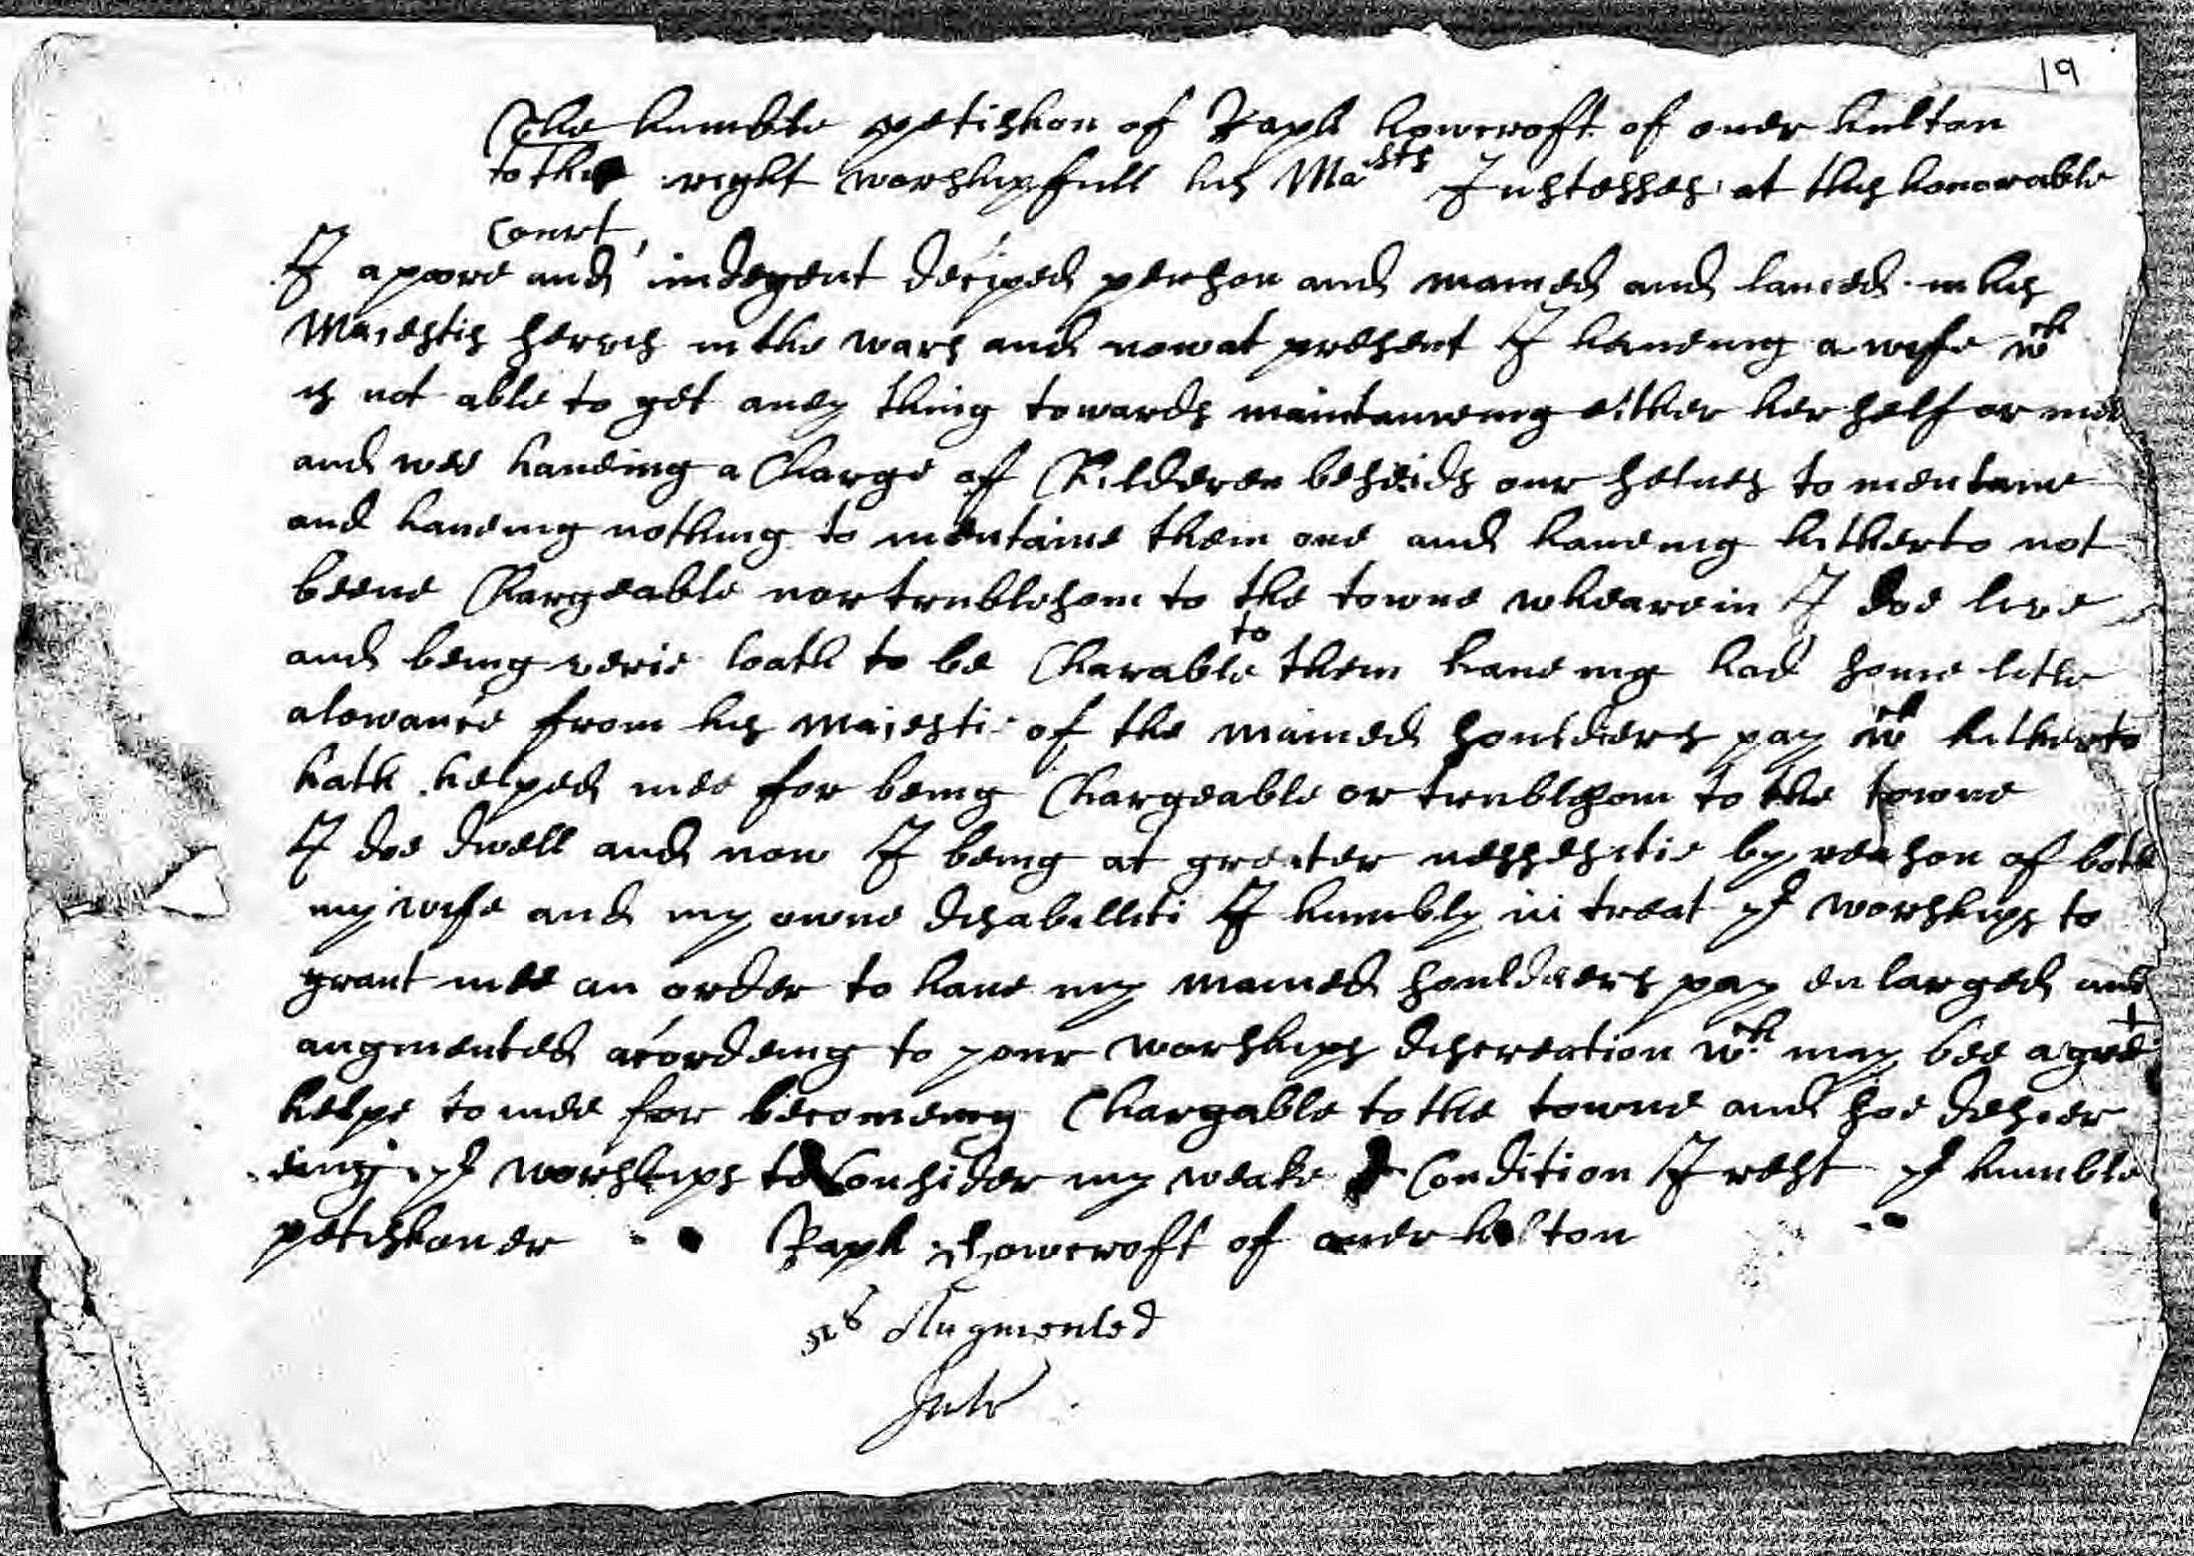 Ralph Howcroft's Petition 1678